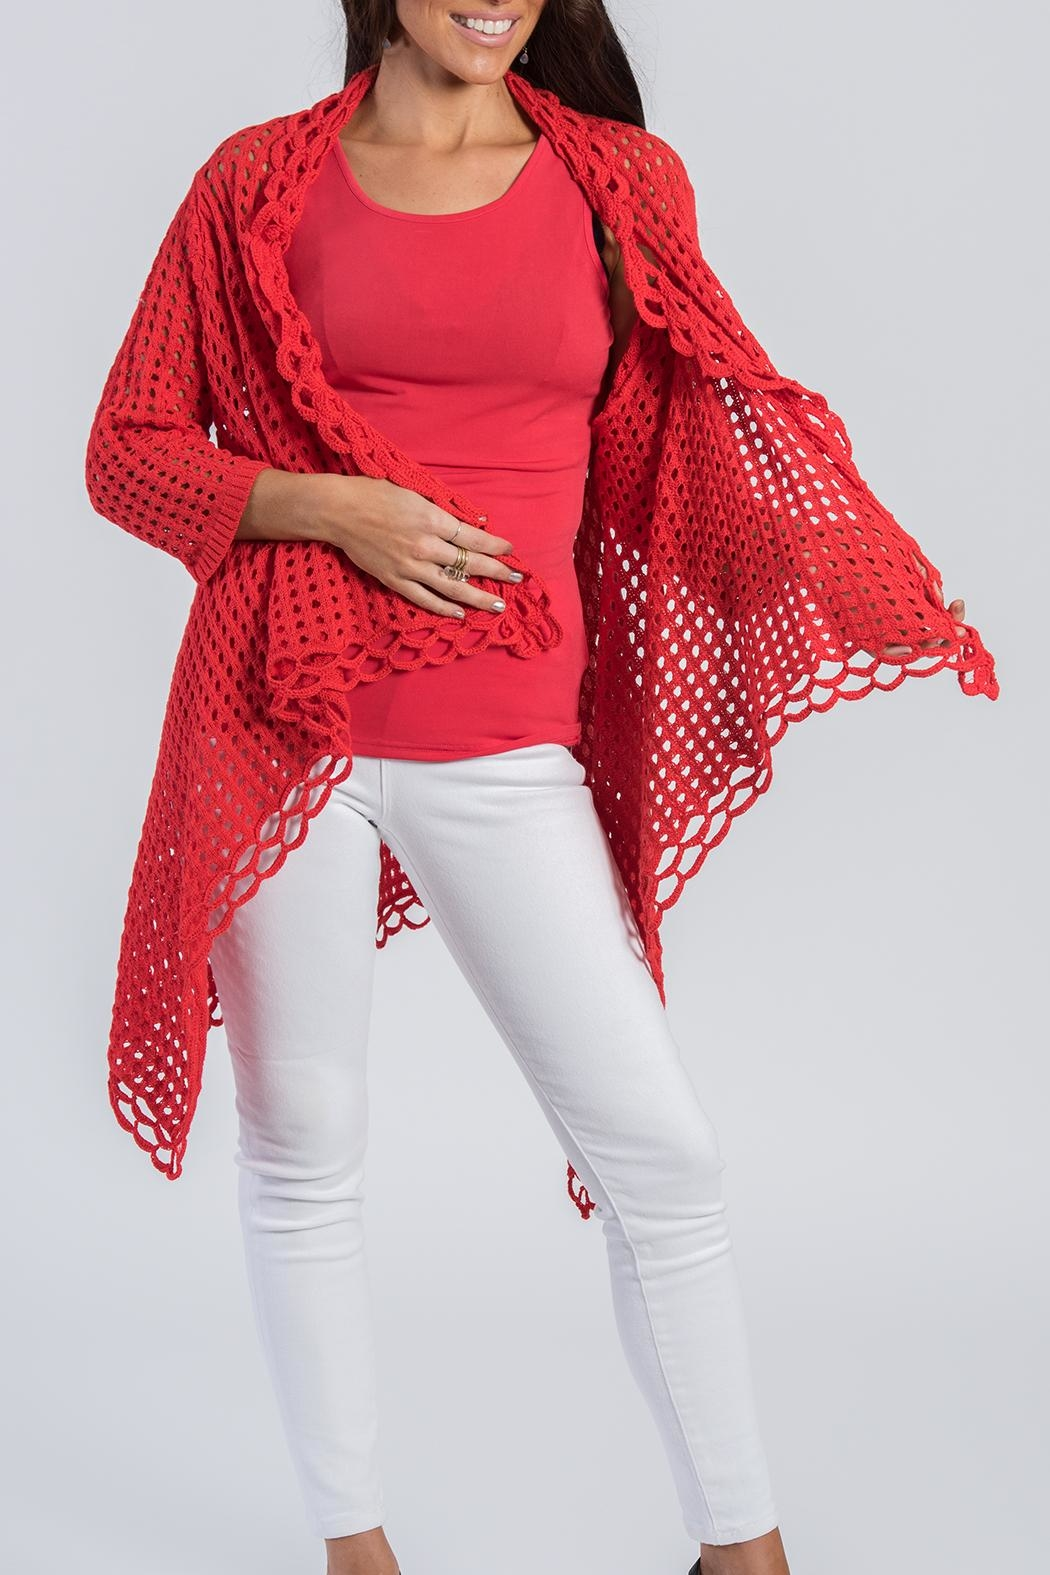 Ethyl Red Knit Cardigan - Main Image